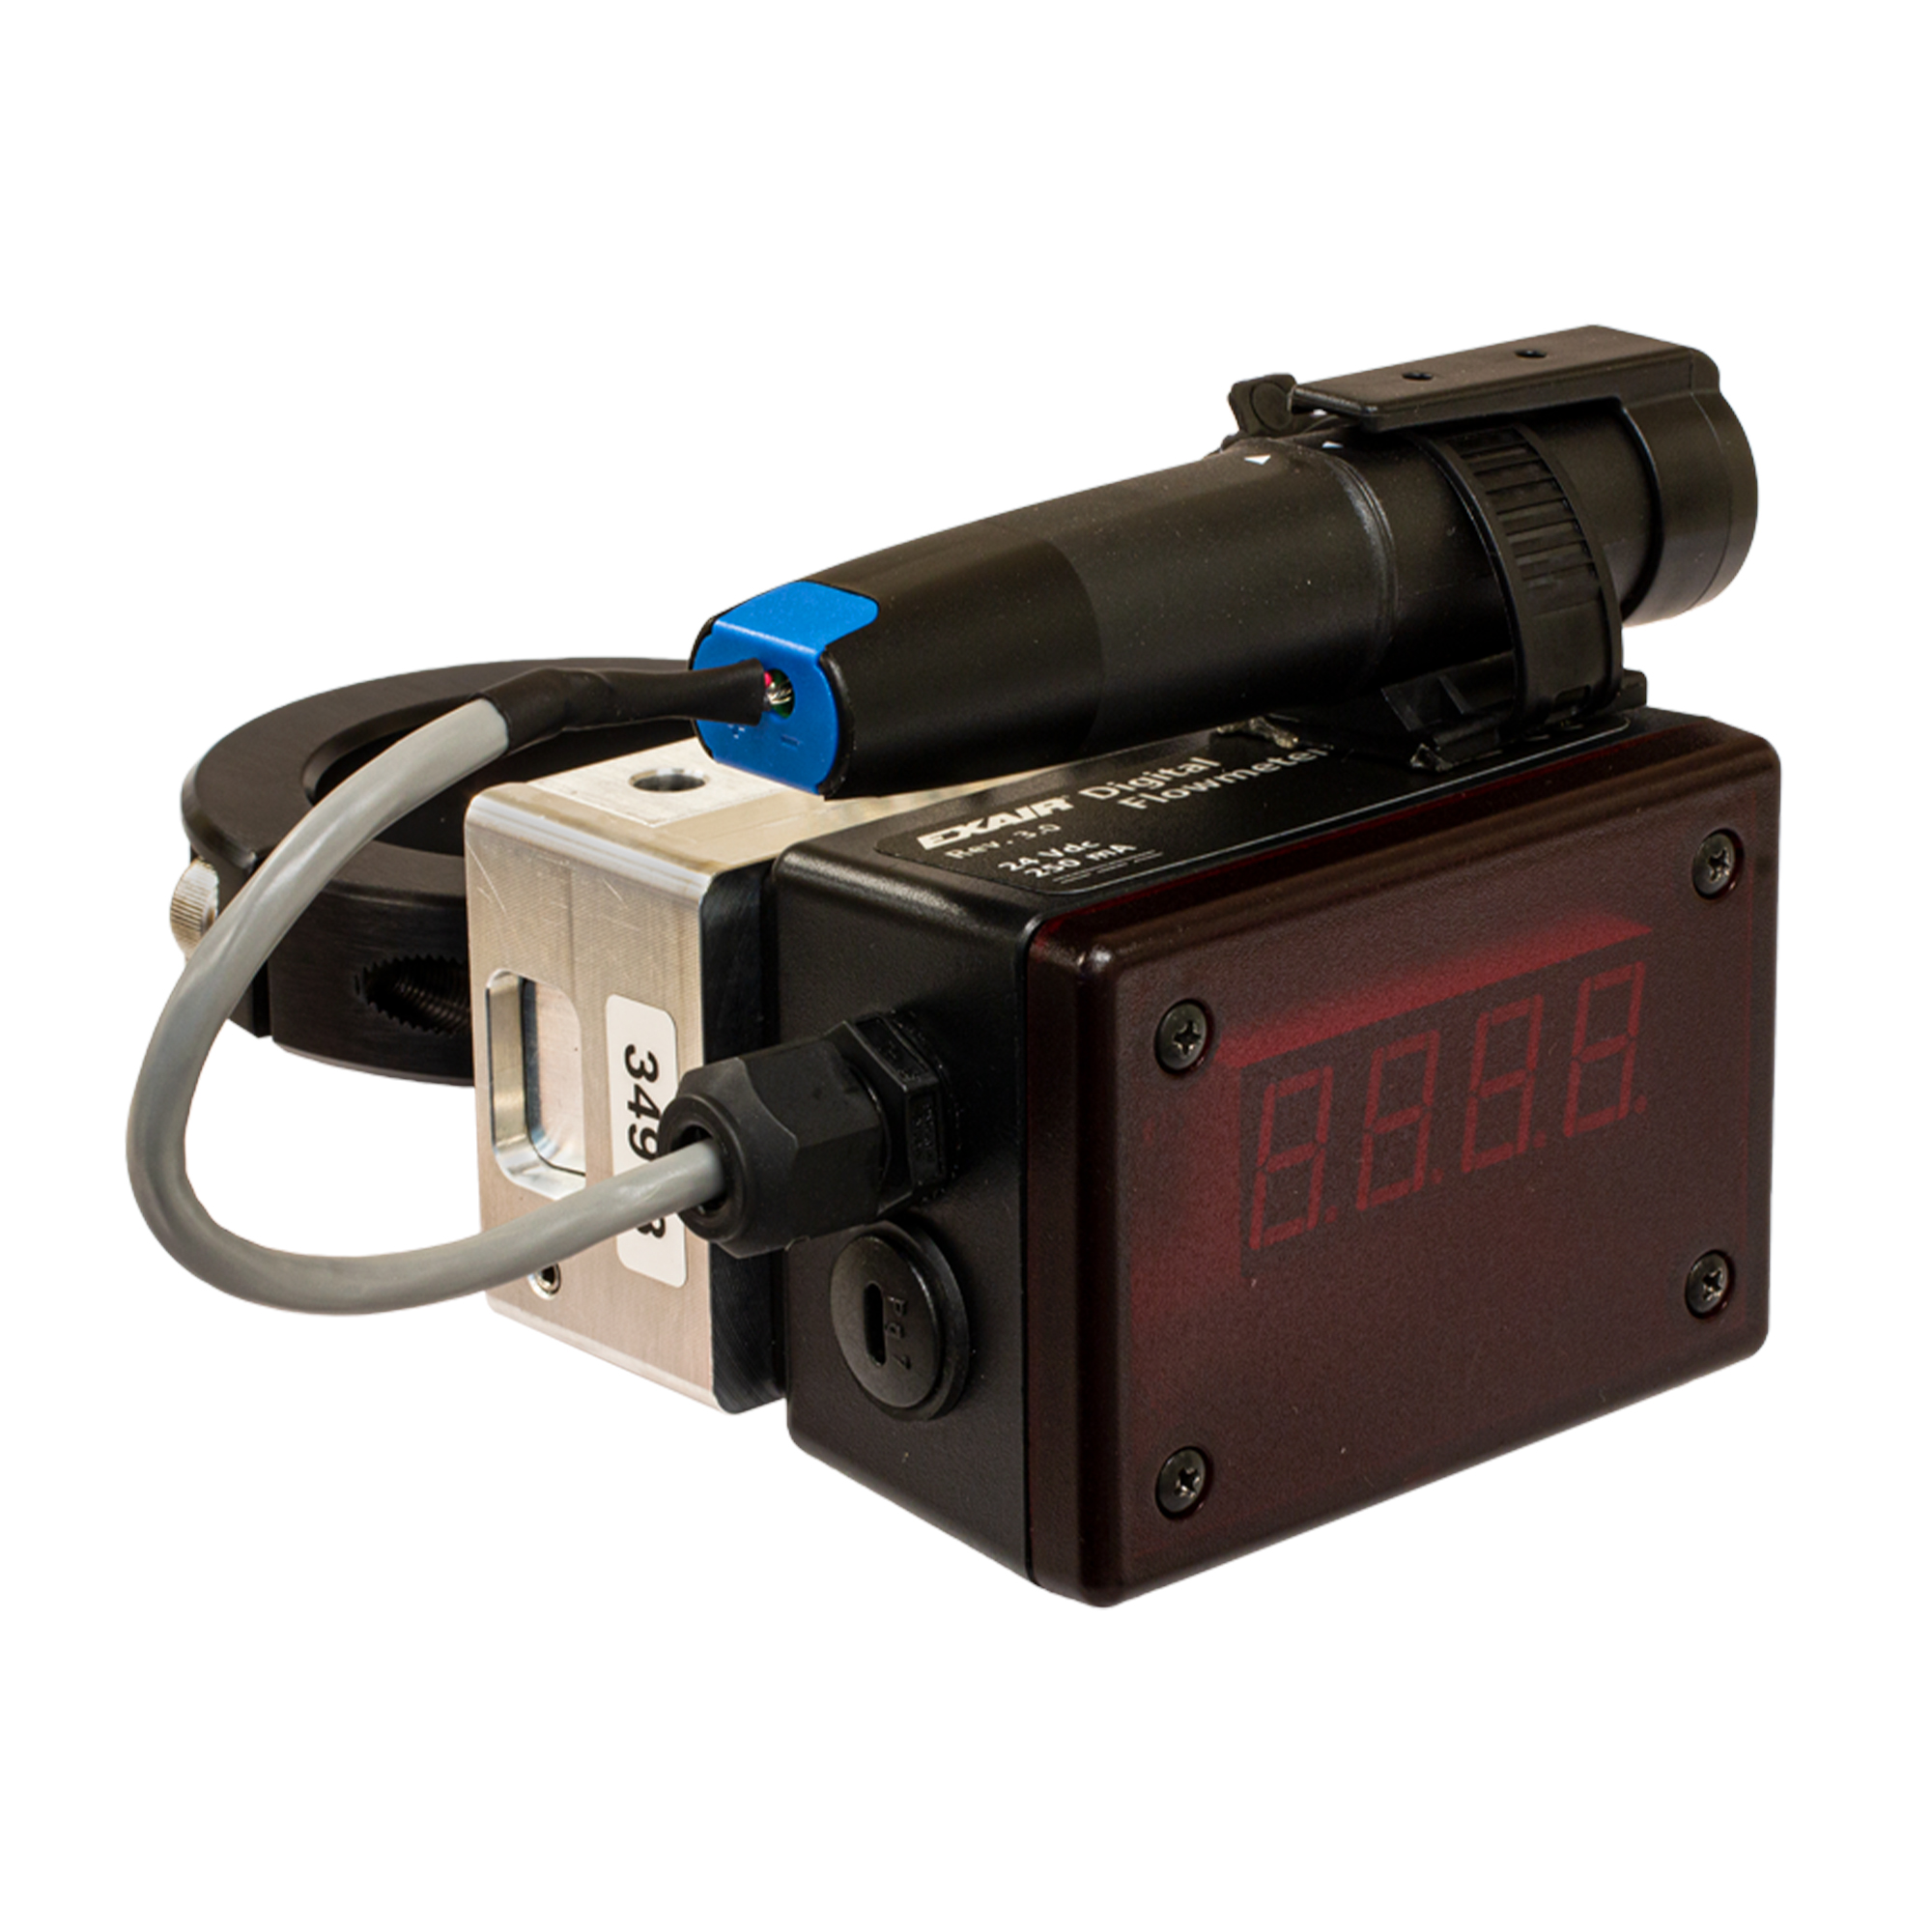 The Hot Tap Digital Flowmeter with Wireless Capability and Data logger gathers air use data from one specific manufacturing process in order to better understand air use trends.